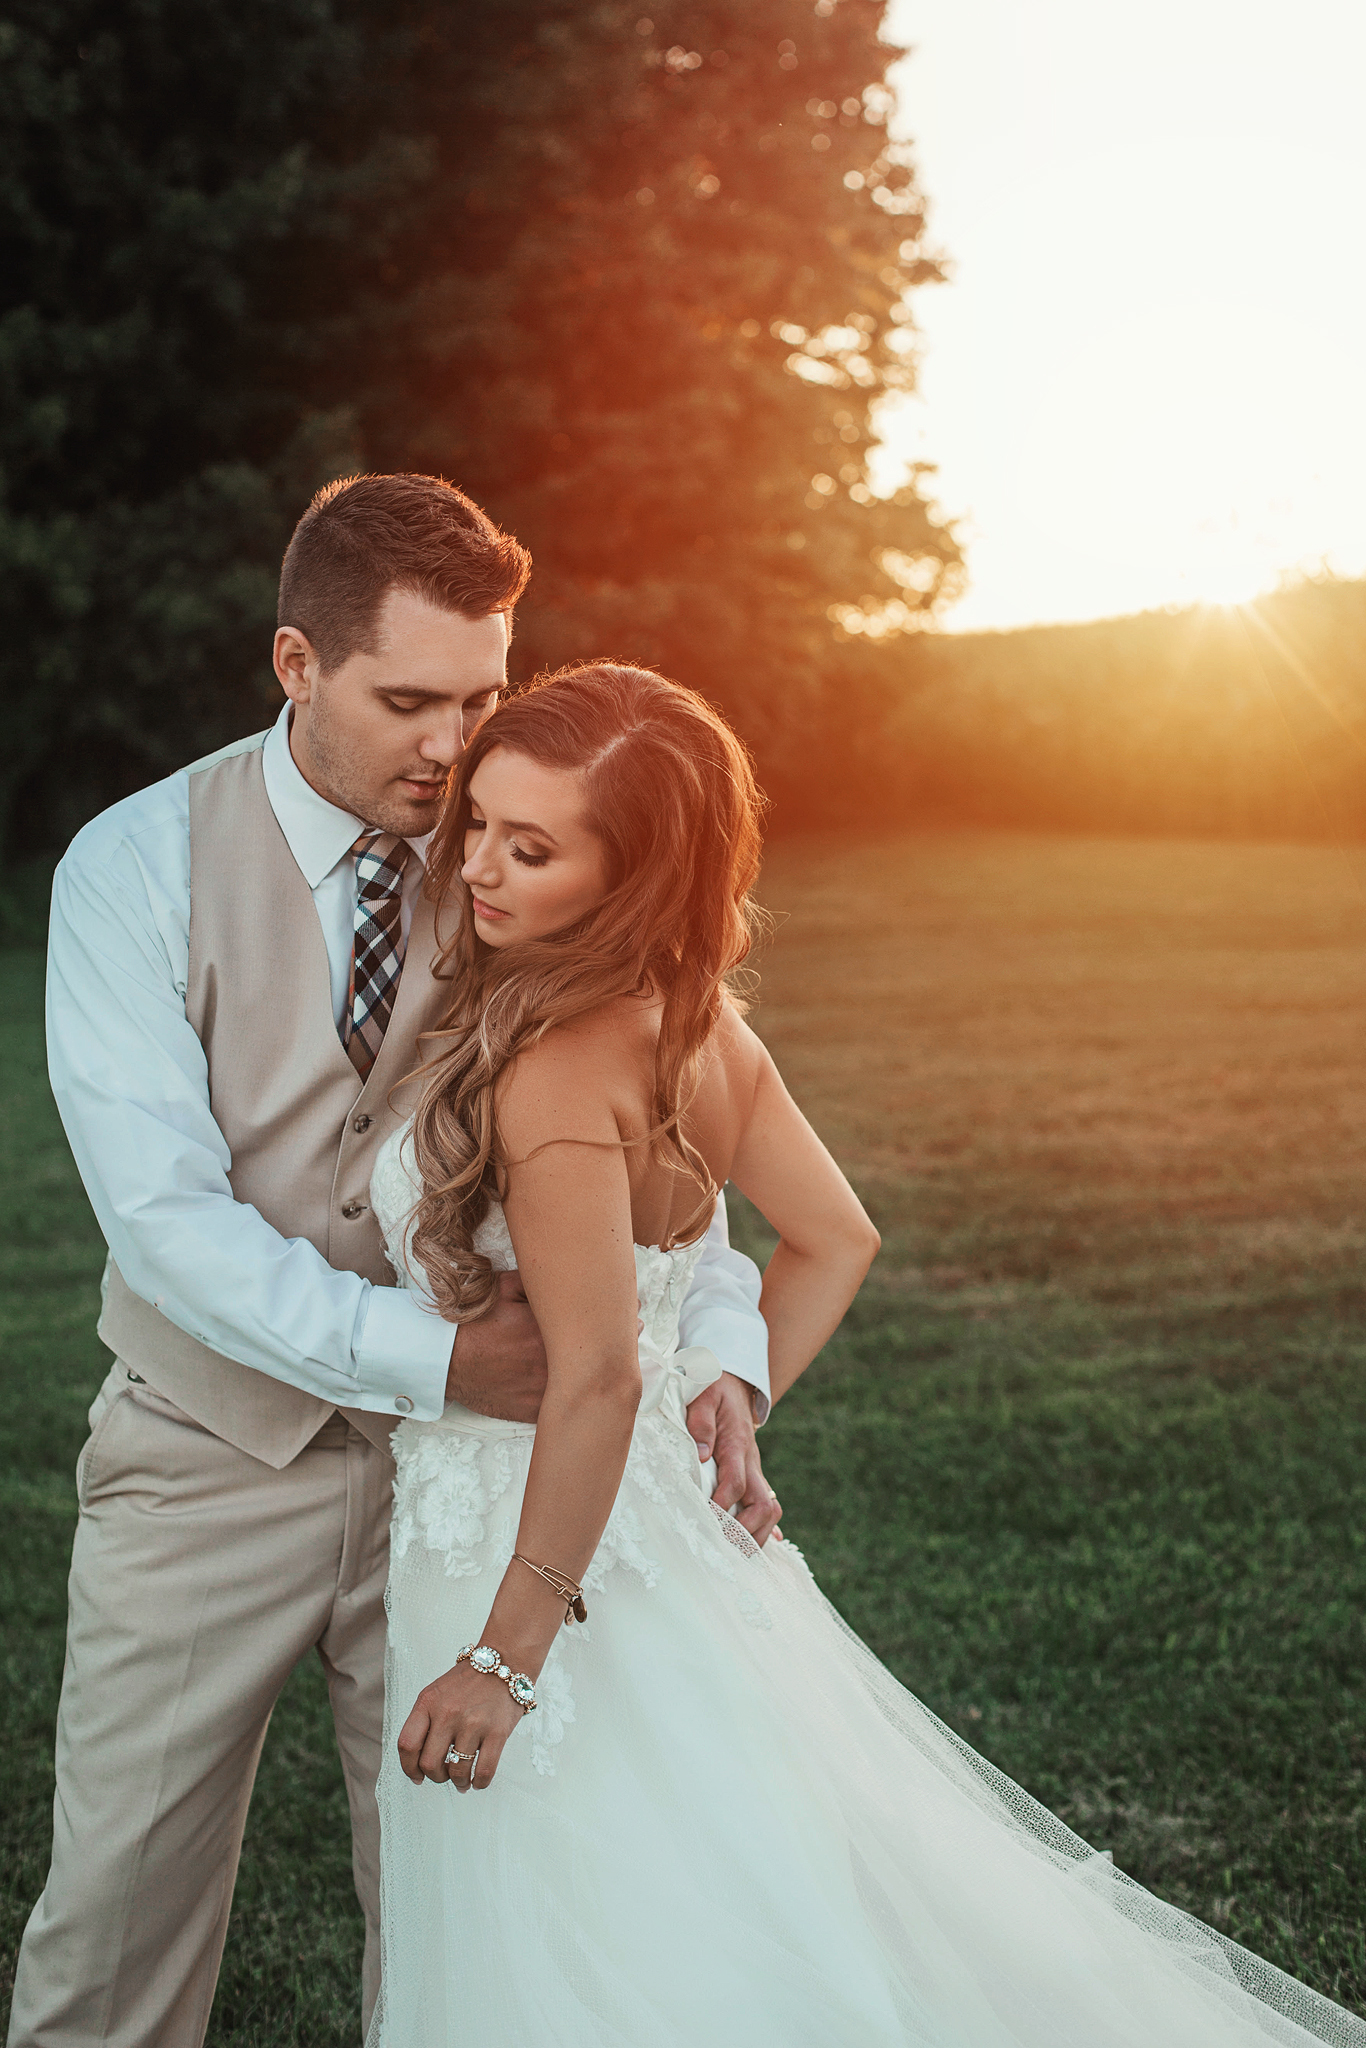 Cincinnati-Dayton-OH-Wedding-Photography-Family-Farm-Venue-Traveling-Photographer-151.jpg